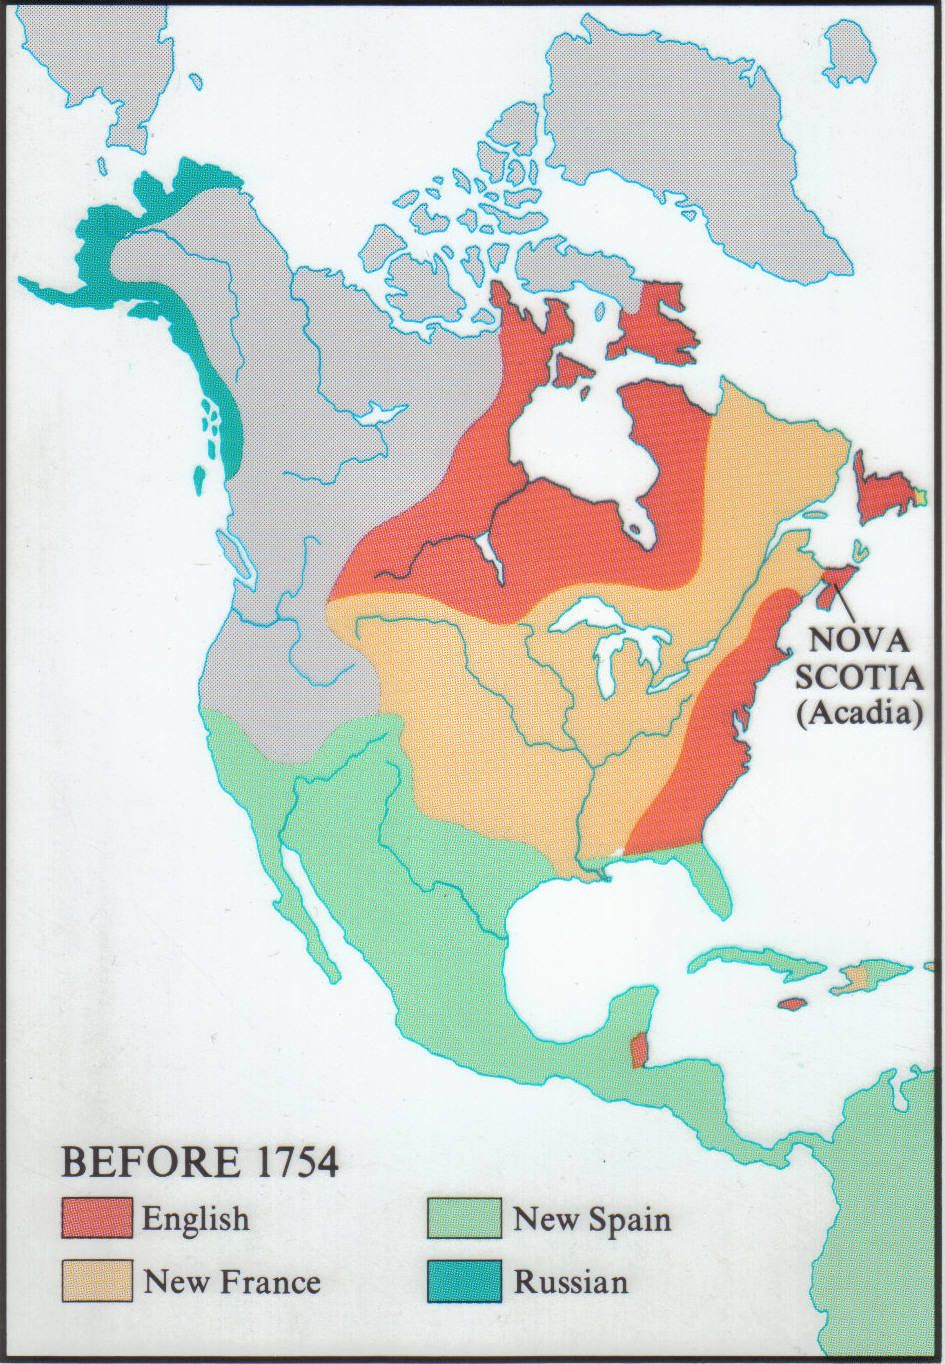 north american colonies outline map - Google Search ... on map of equatorial guinea in spanish, map of barcelona in spanish, map of paraguay in spanish, map of cities in espana, map of countries that speak spanish, map of the world in spanish, map of china in spanish, map of dominican republic in spanish, map of north america in spanish, map of spanish speaking countries, map of egypt in spanish, map of spanish speaking world, map of united states in spanish, map of austria in spanish, capital of venezuela in spanish, espana capital in spanish, map of trinidad in spanish, map of continents in spanish, map of puerto rico in spanish, map of england in 1500,